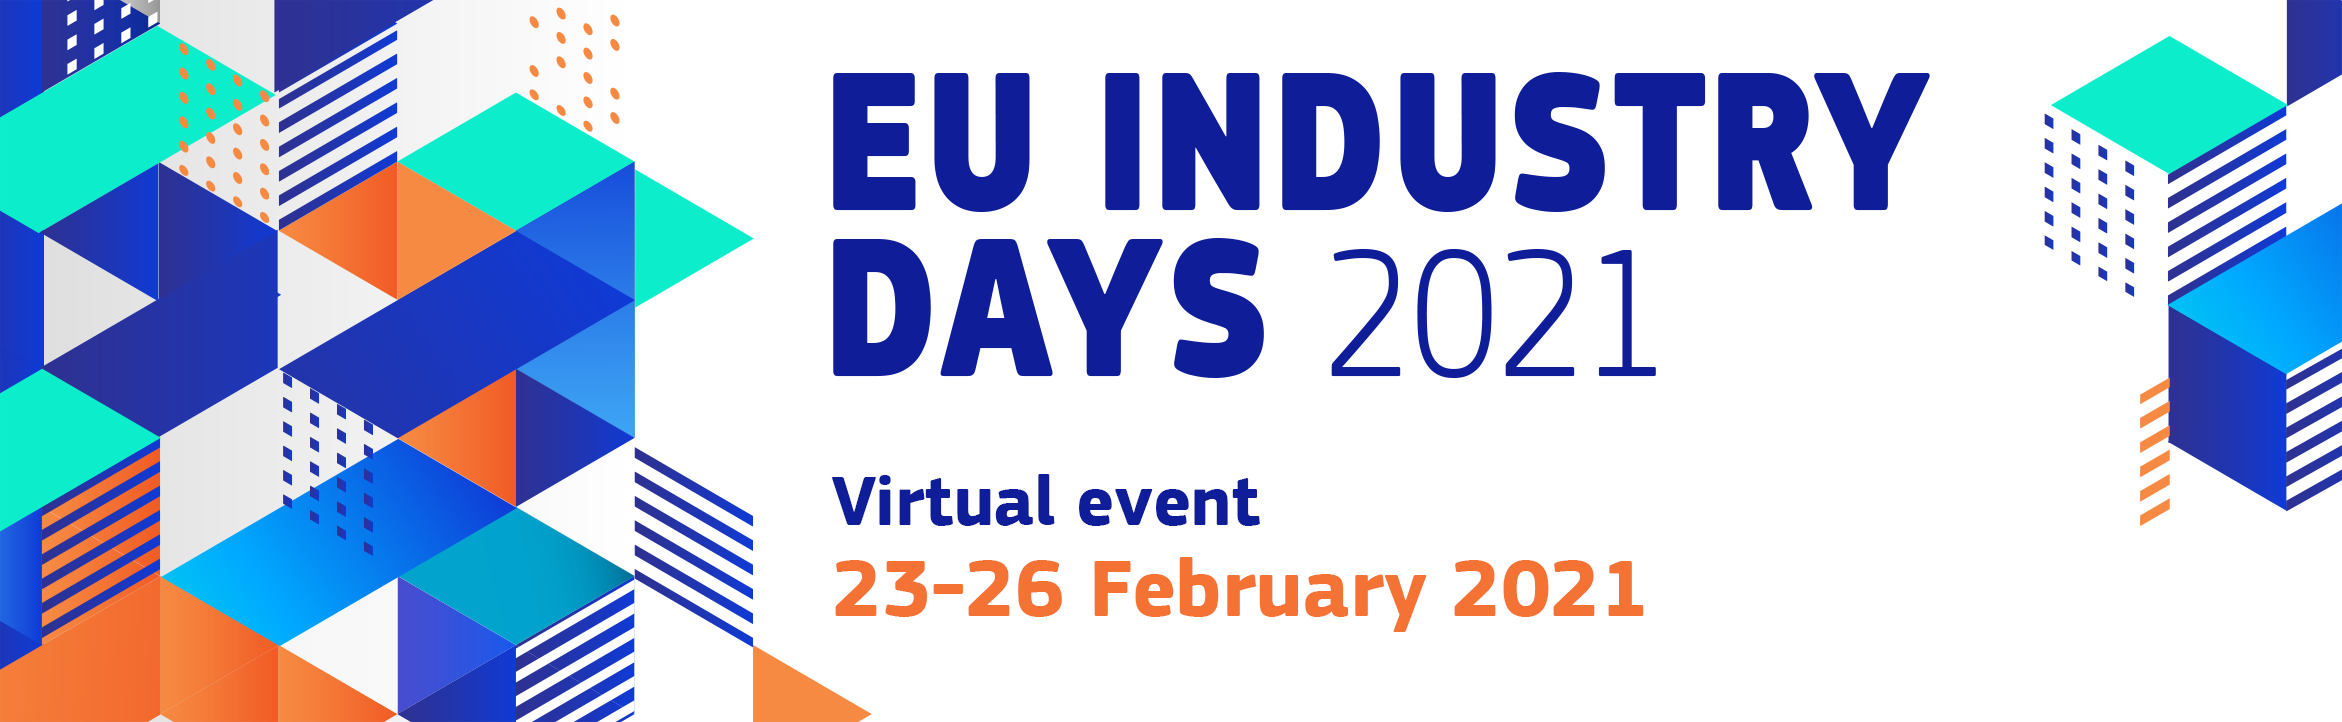 President von der Leyen underlines the importance of batteries at the EU Industry Days 2021